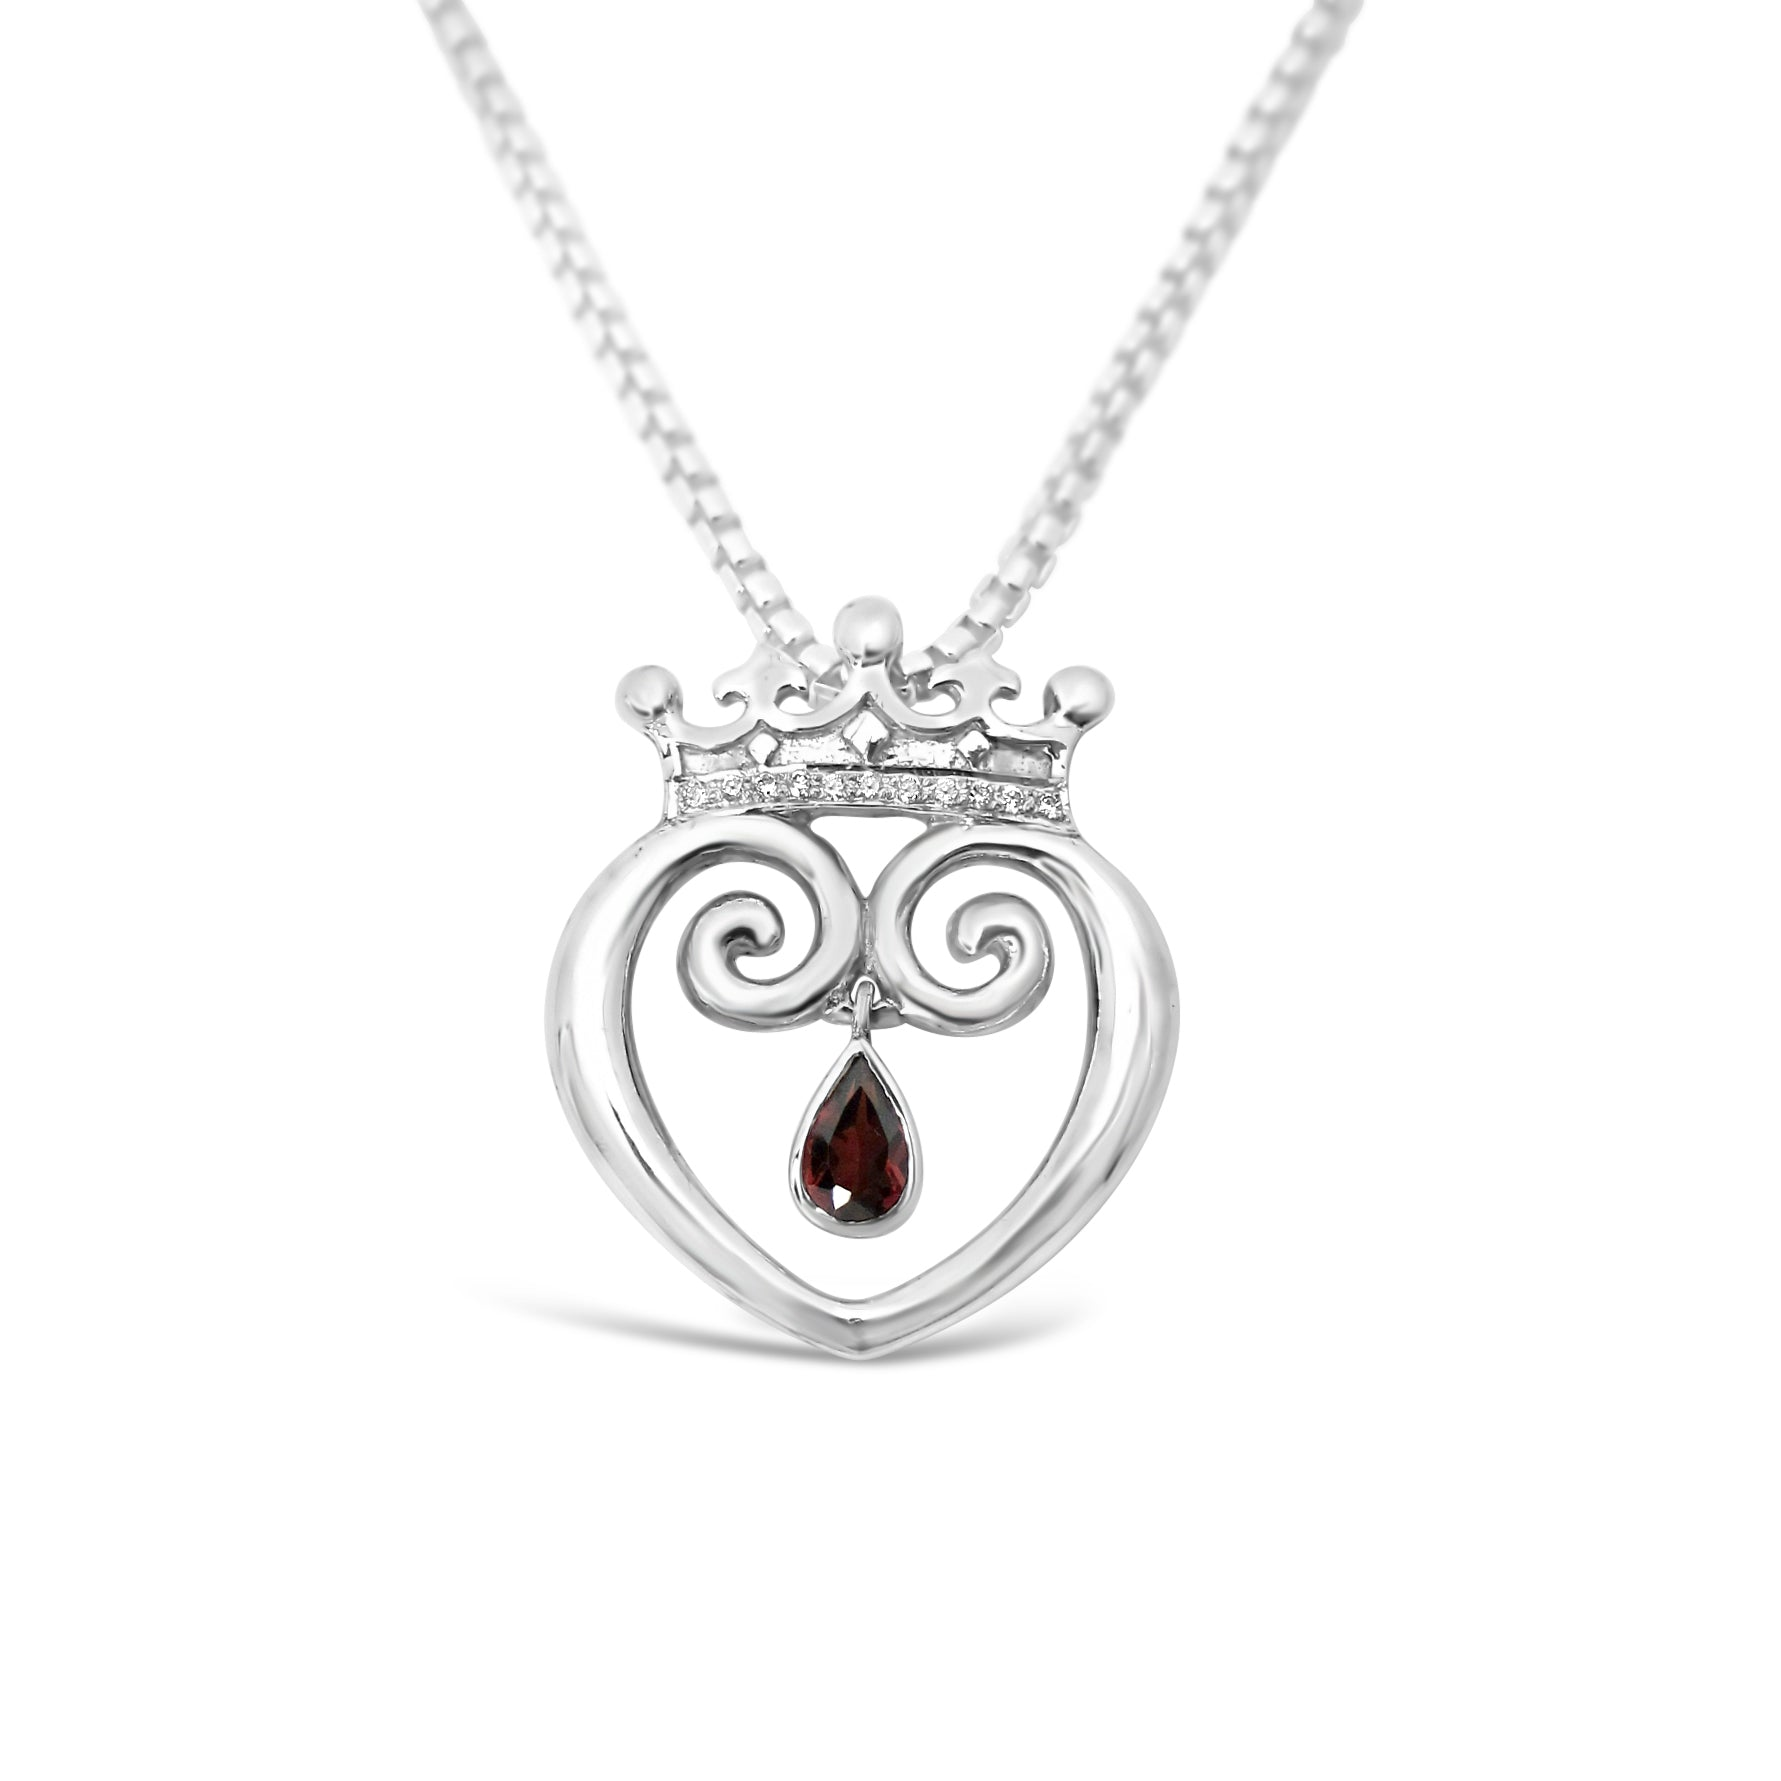 Queen of Hearts with Garnet & Diamonds - Medium